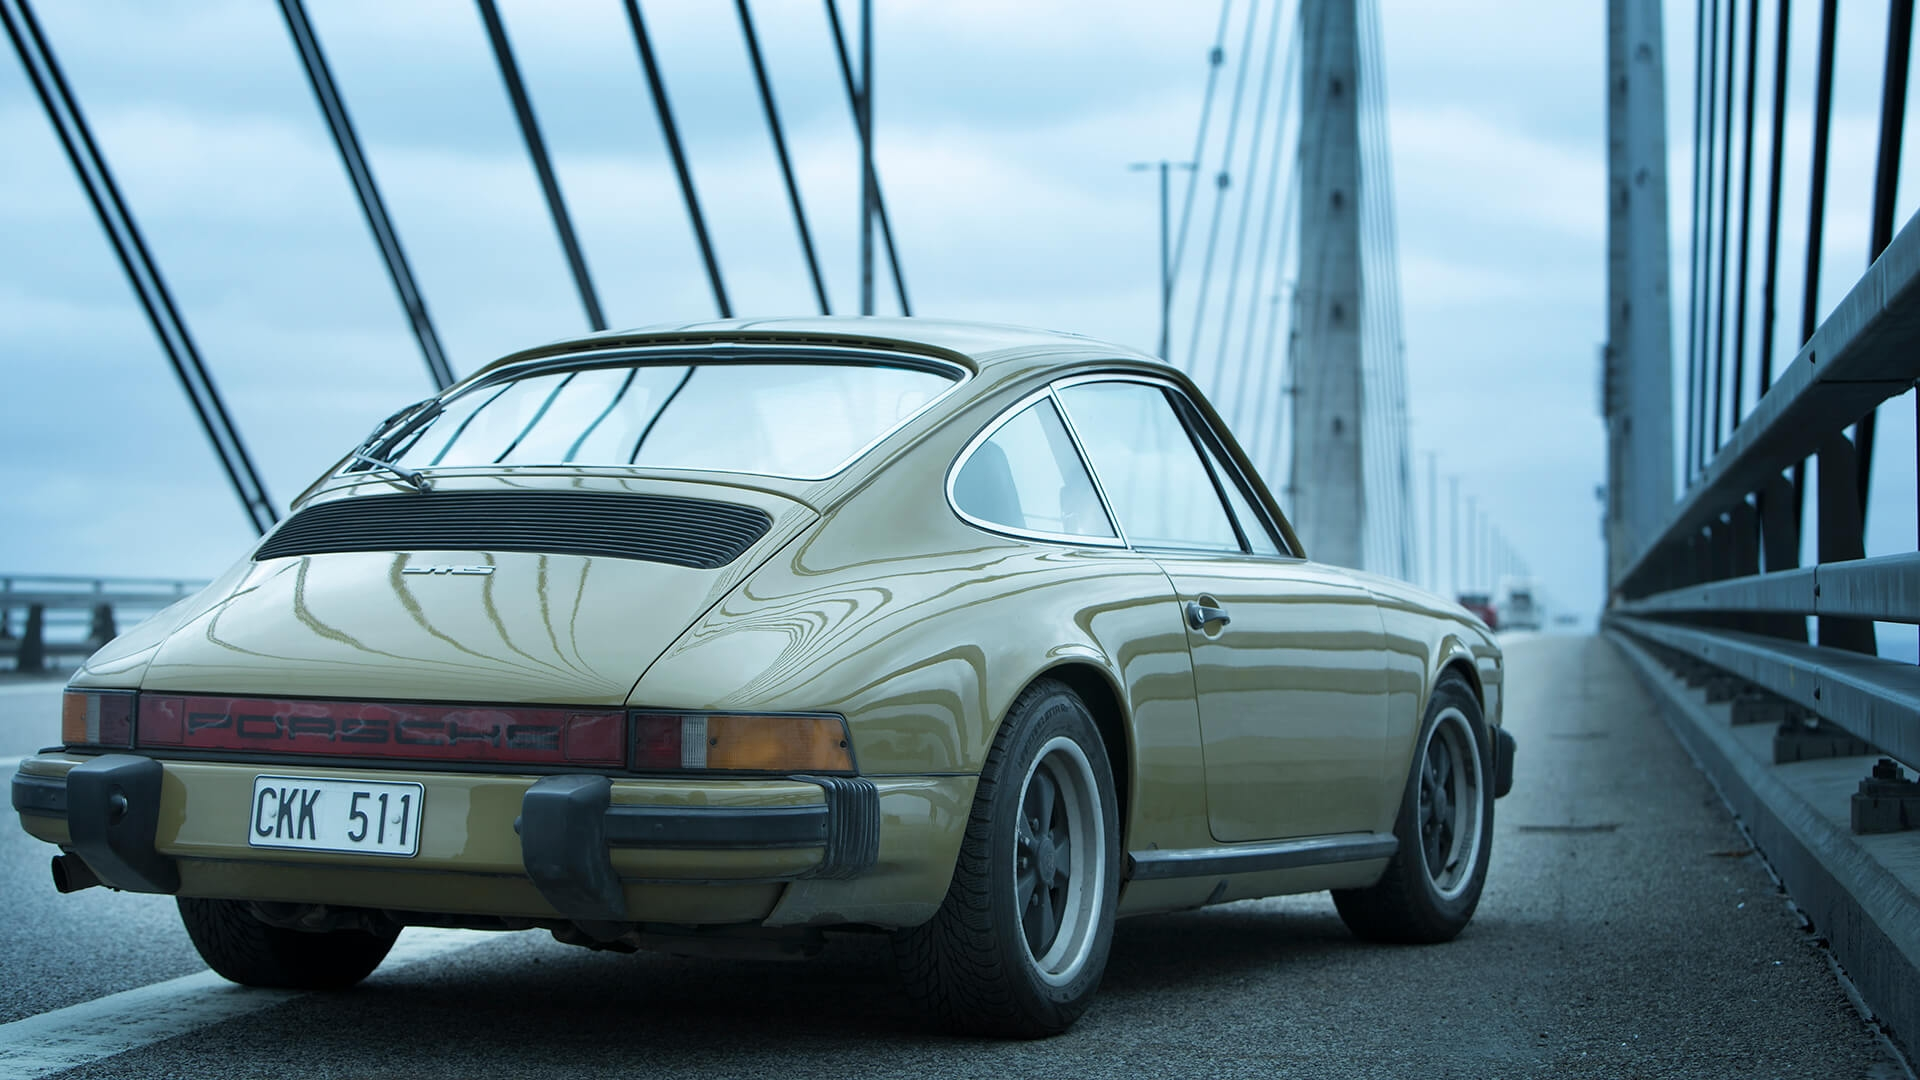 Bonhams to offer 'The Bridge 911' for charity at the Goodwood Festival